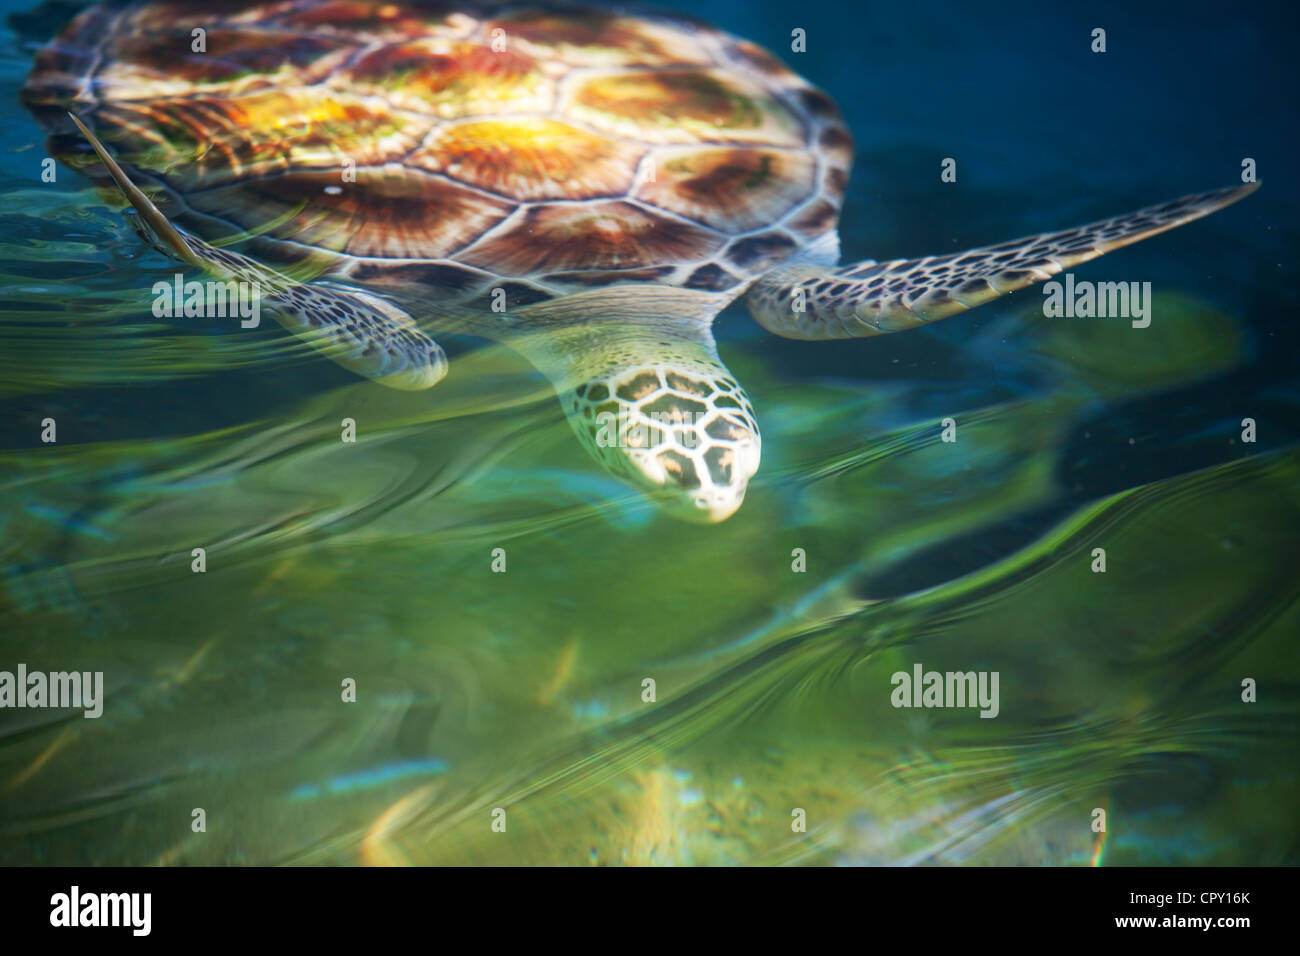 Turtle Photo Stock